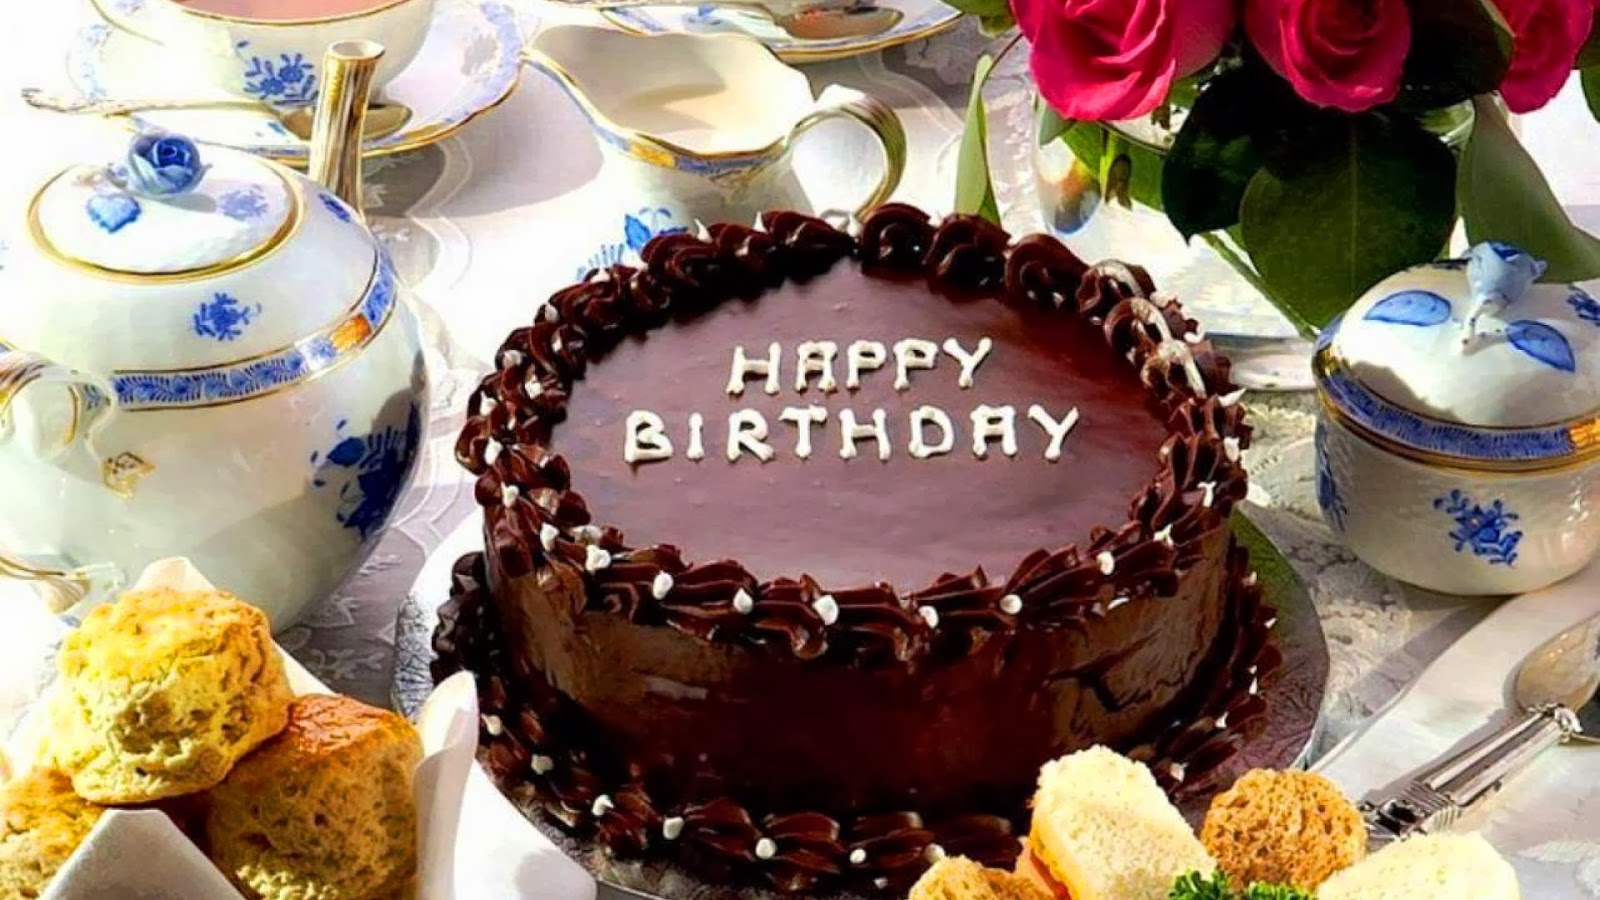 Happy Birthday Cake Wallpapers Free Download